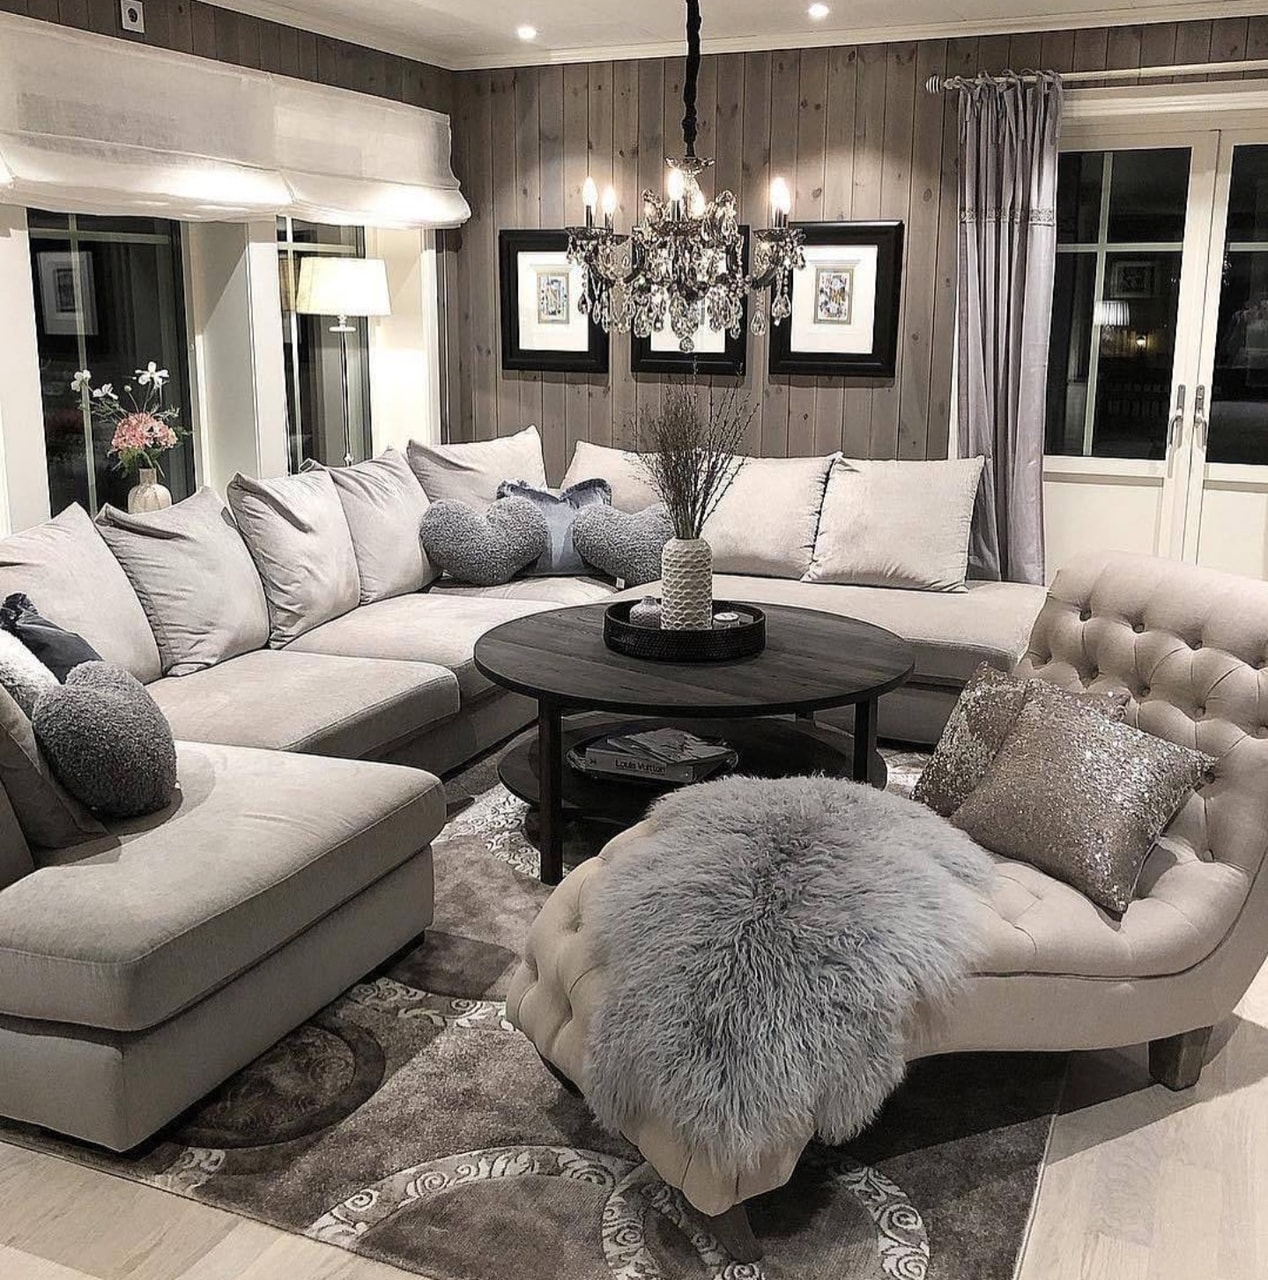 chandelier, inspiration, styl and home inspiration